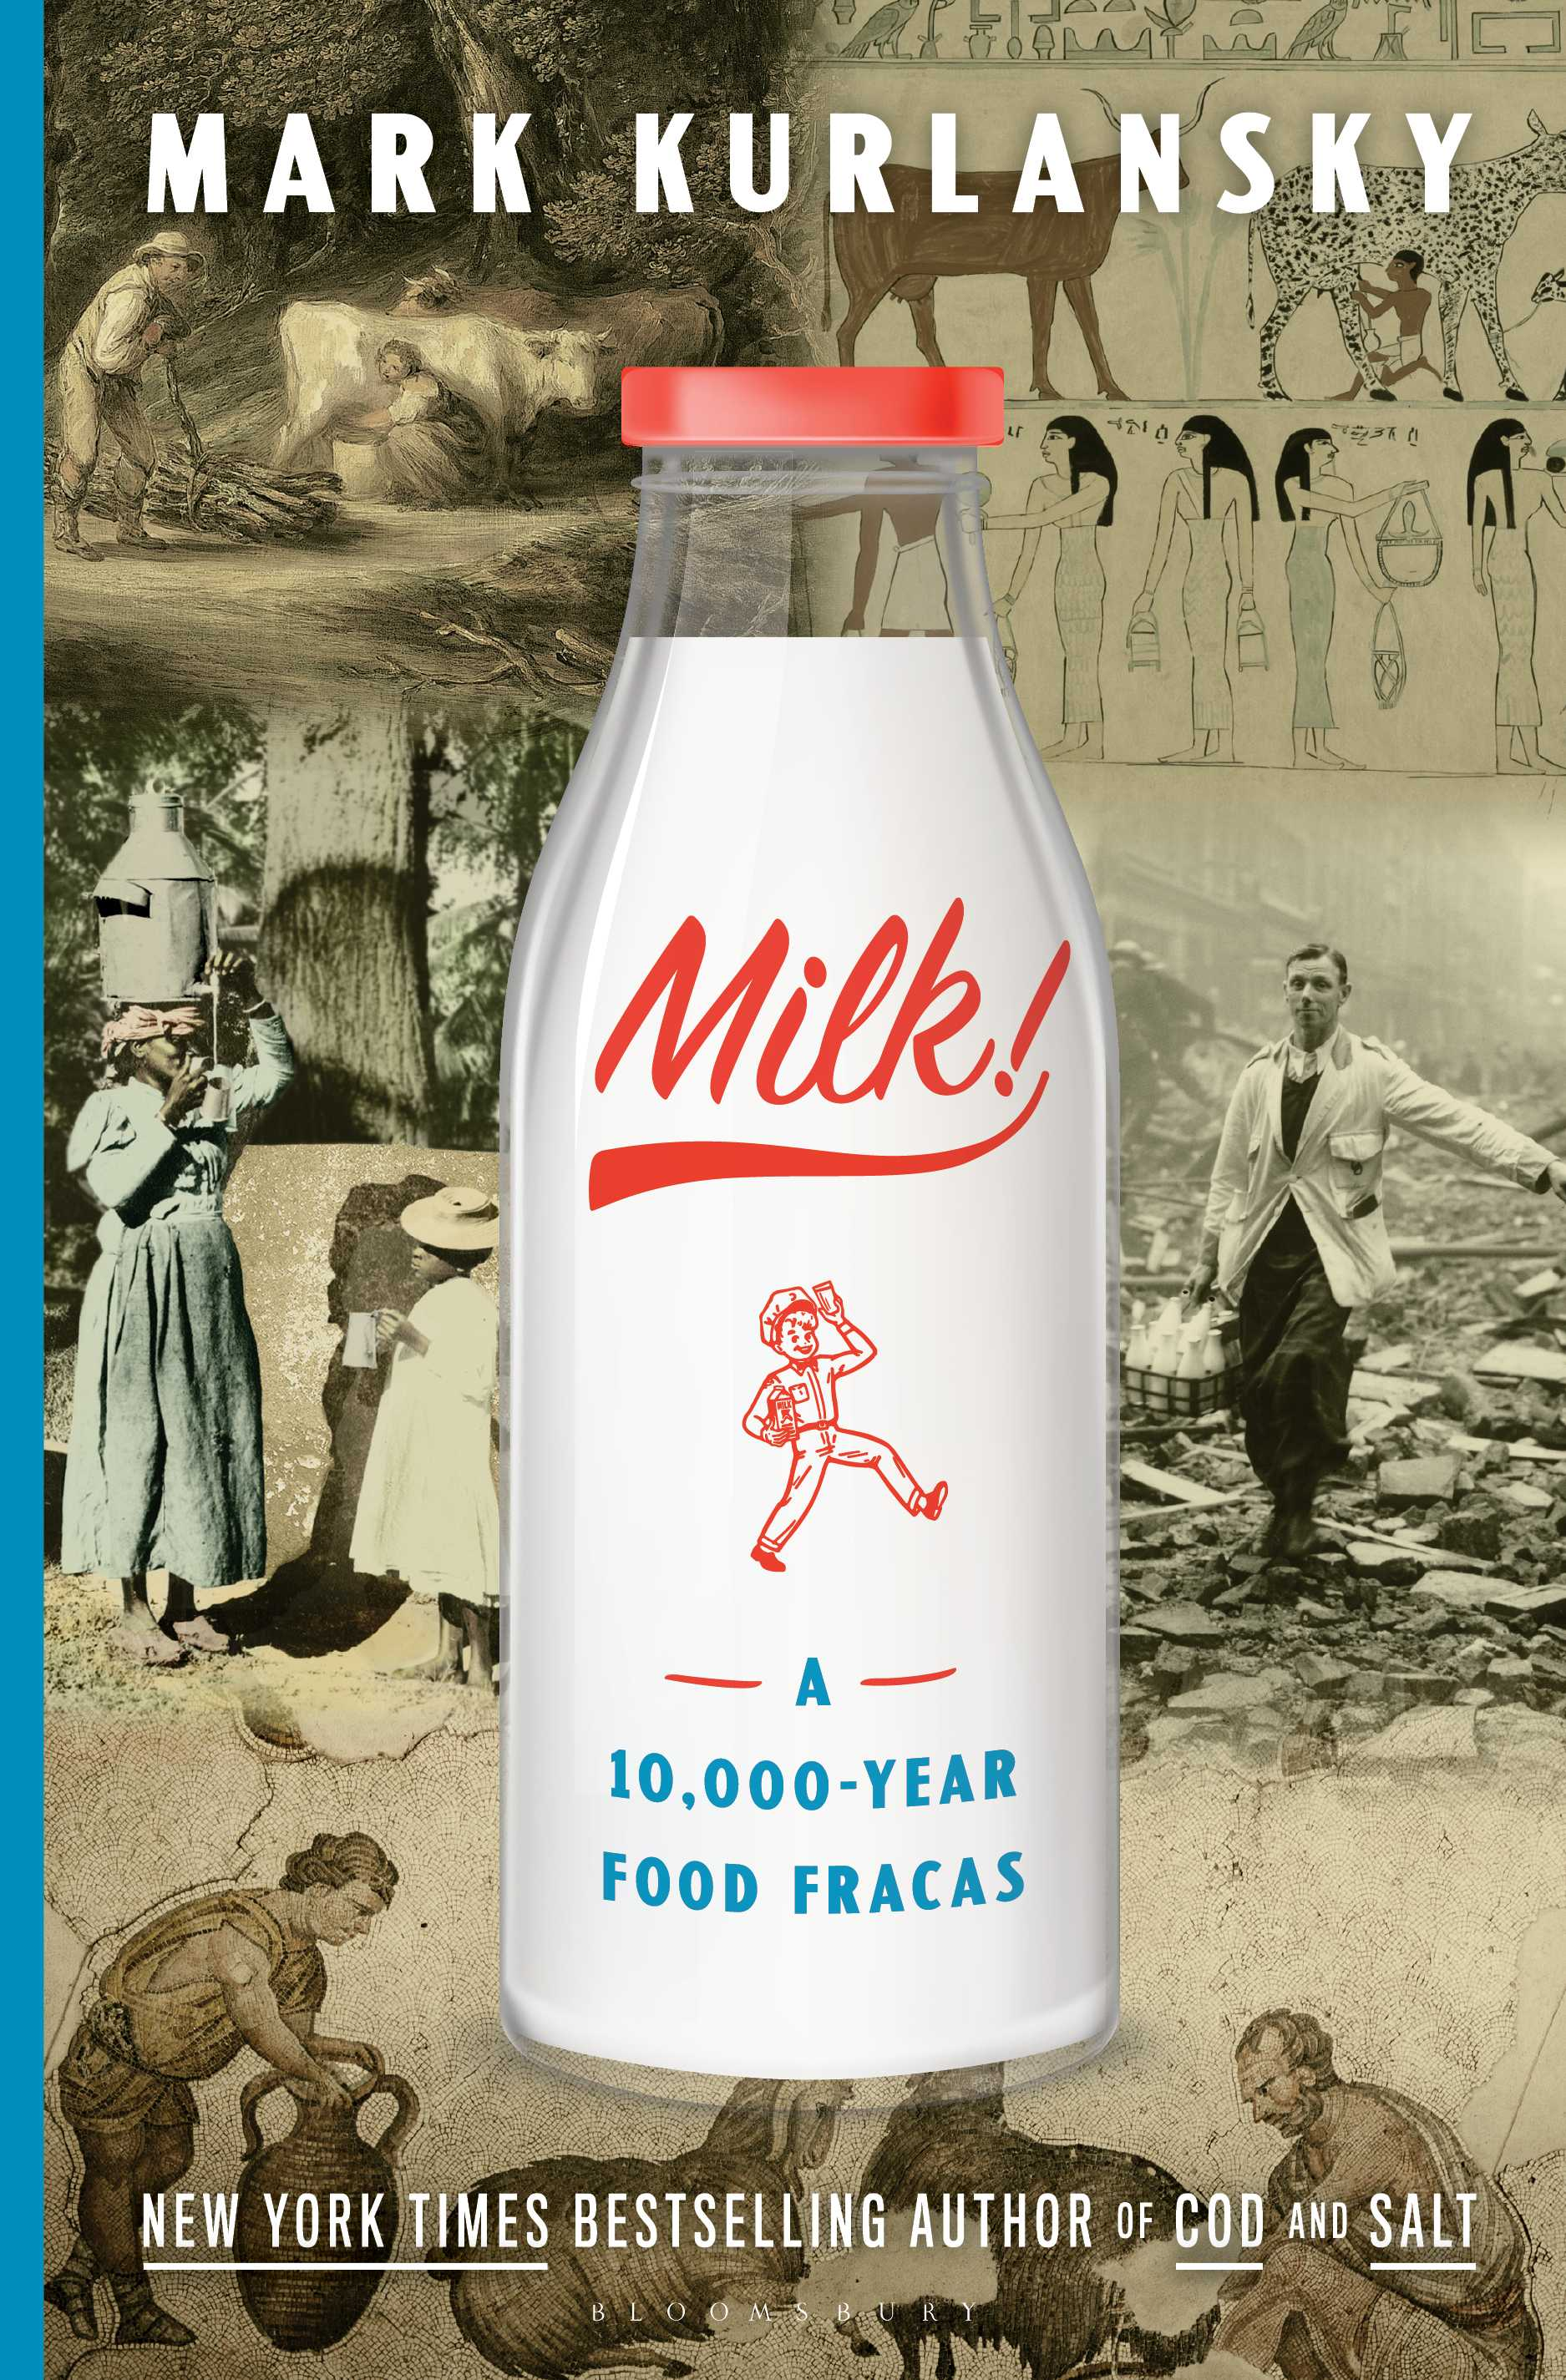 """Milk! A 10,000-Year Food Fracas"" by Mark Kurlansky"